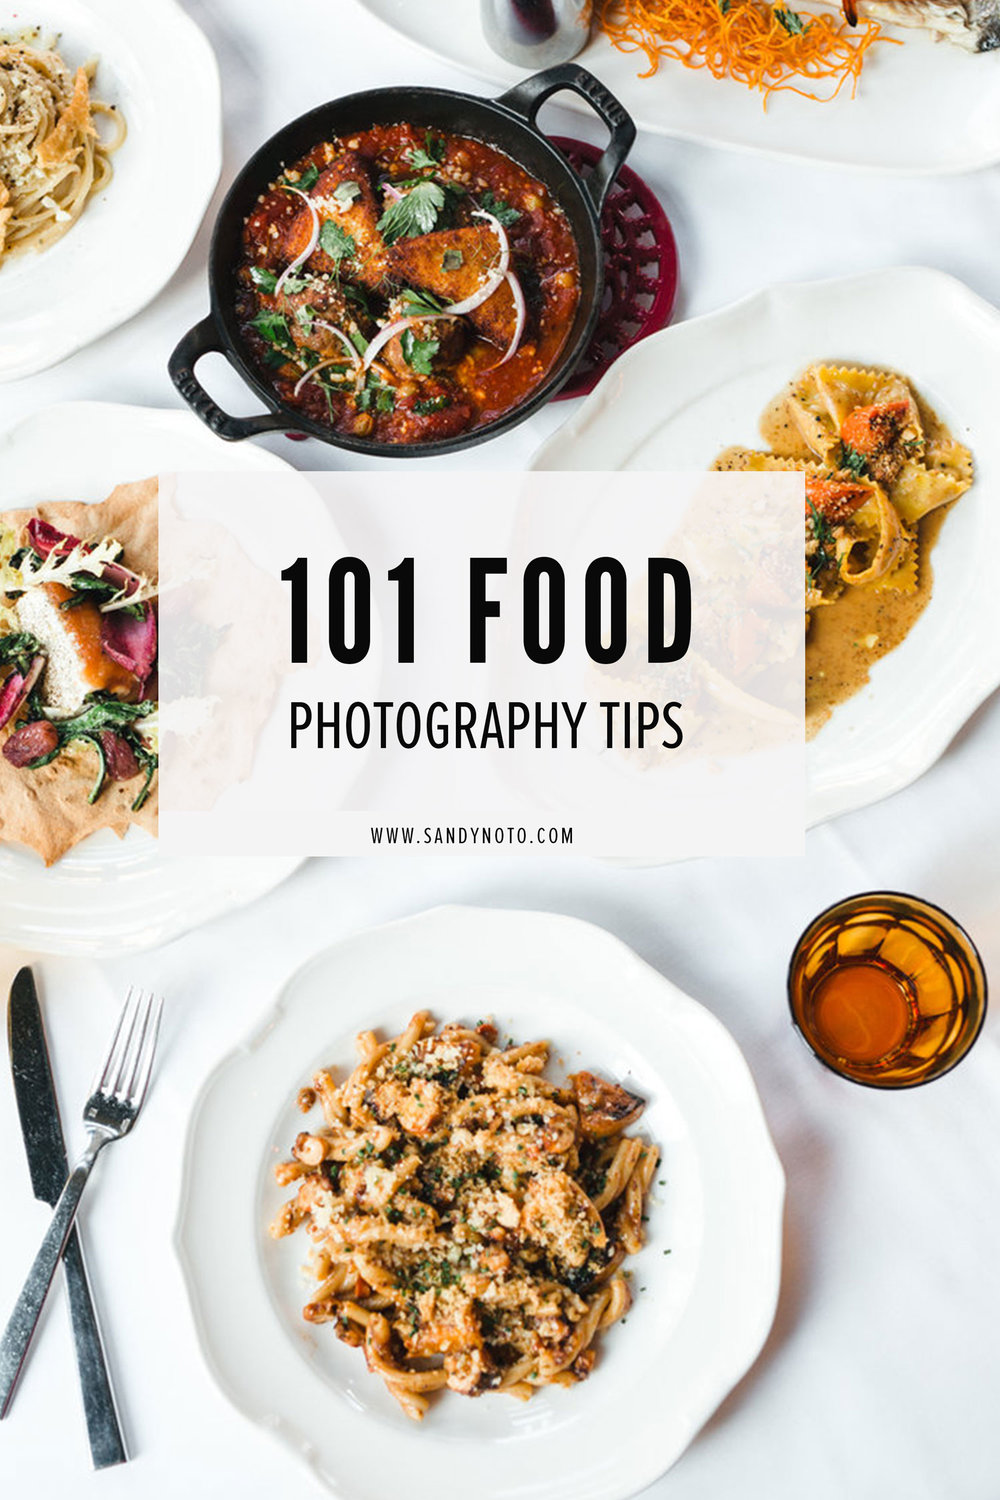 101 Food Photography Tips & Tricks